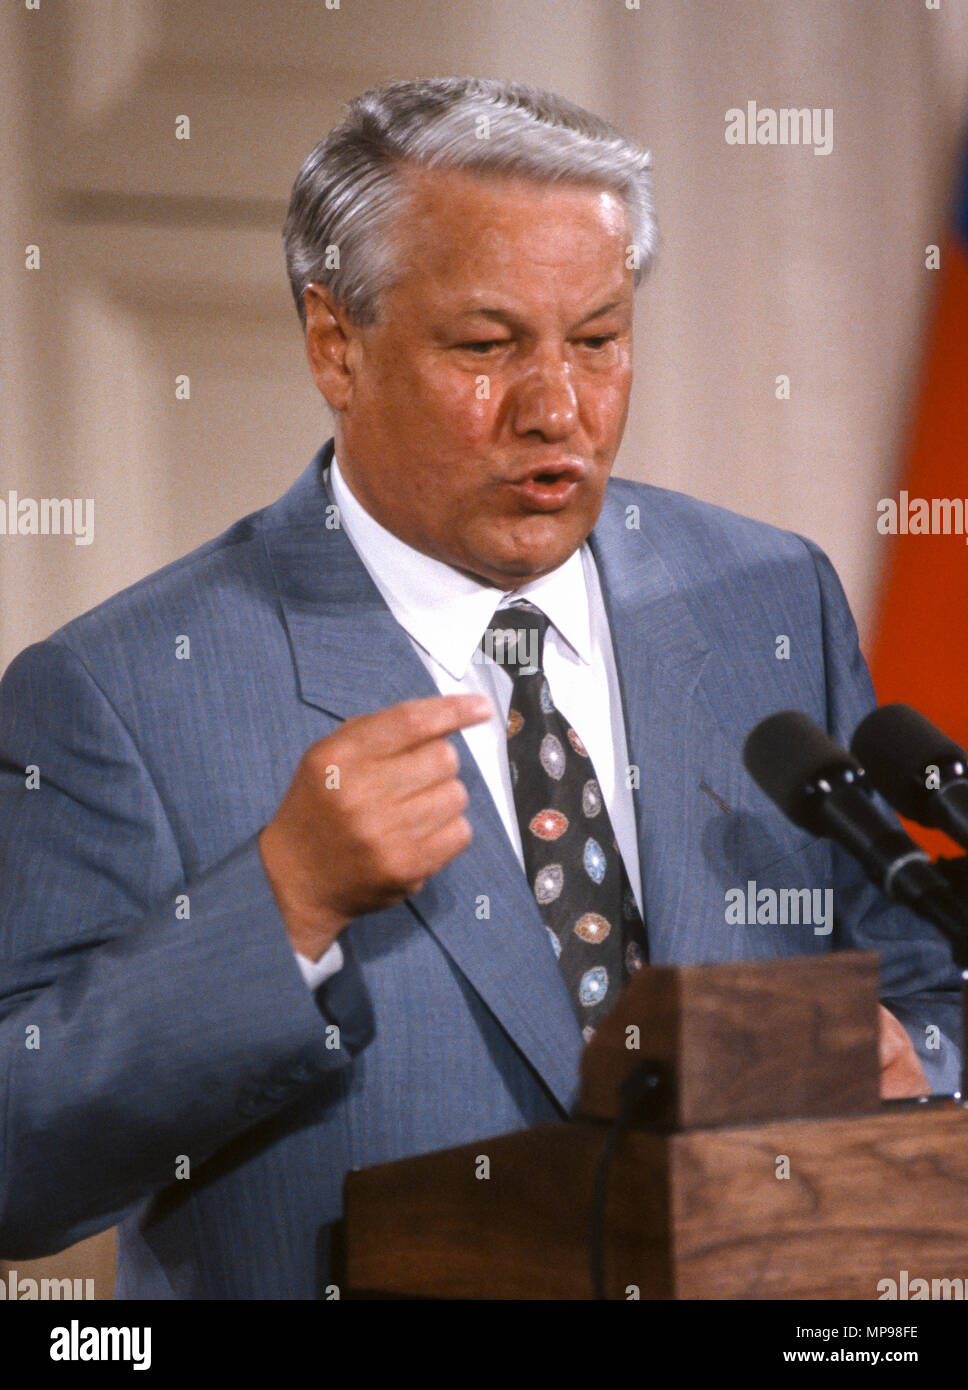 WASHINGTON, DC, USA - JUNE 17, 1992: Russia President Boris Yeltin speaking at news conference in East Room of White House during summit with President George H.W. Bush. - Stock Image